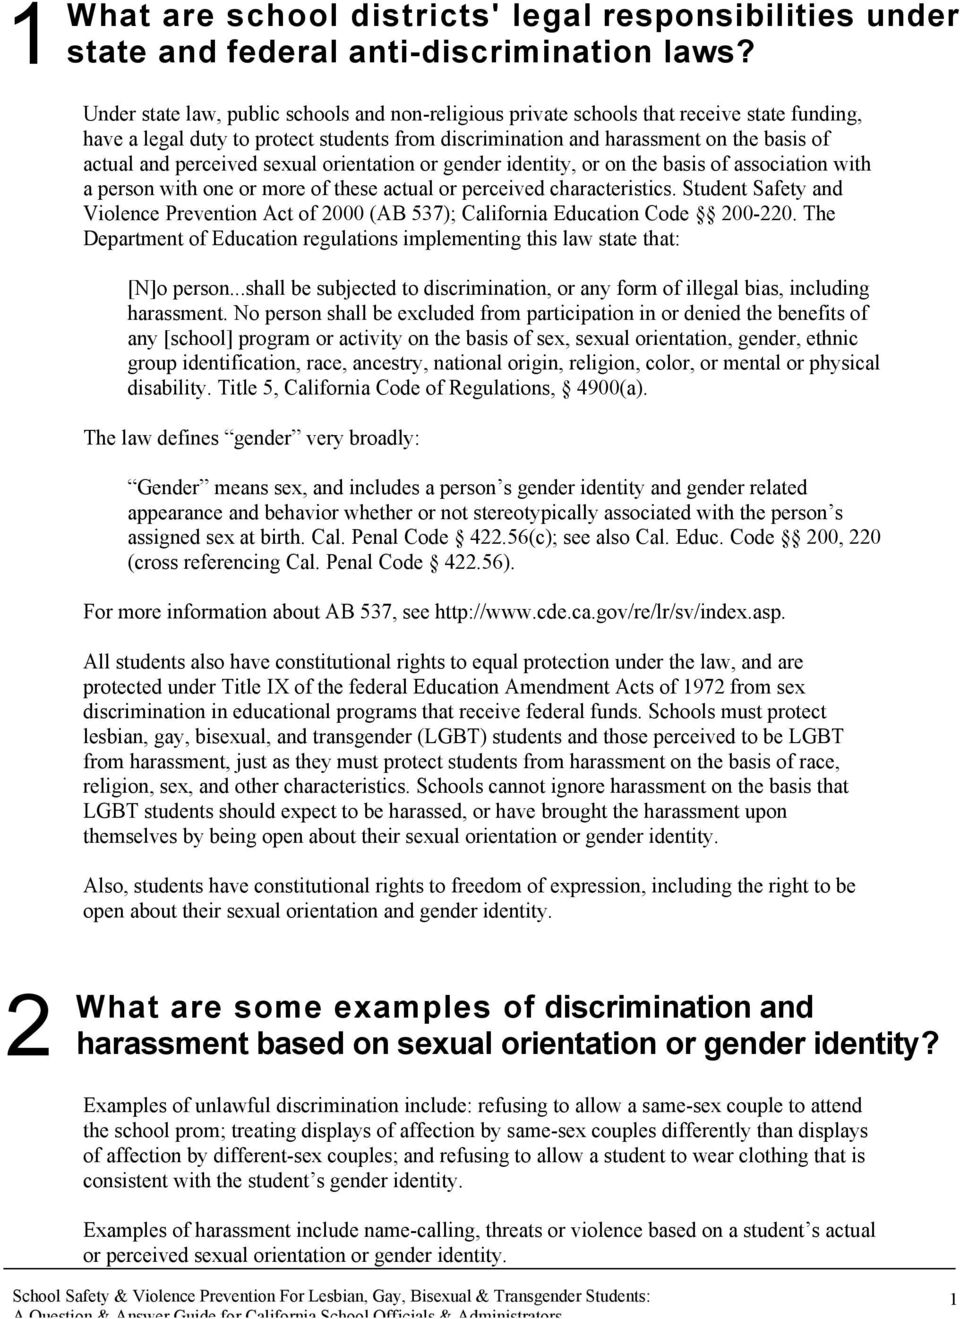 perceived sexual orientation or gender identity, or on the basis of association with a person with one or more of these actual or perceived characteristics.